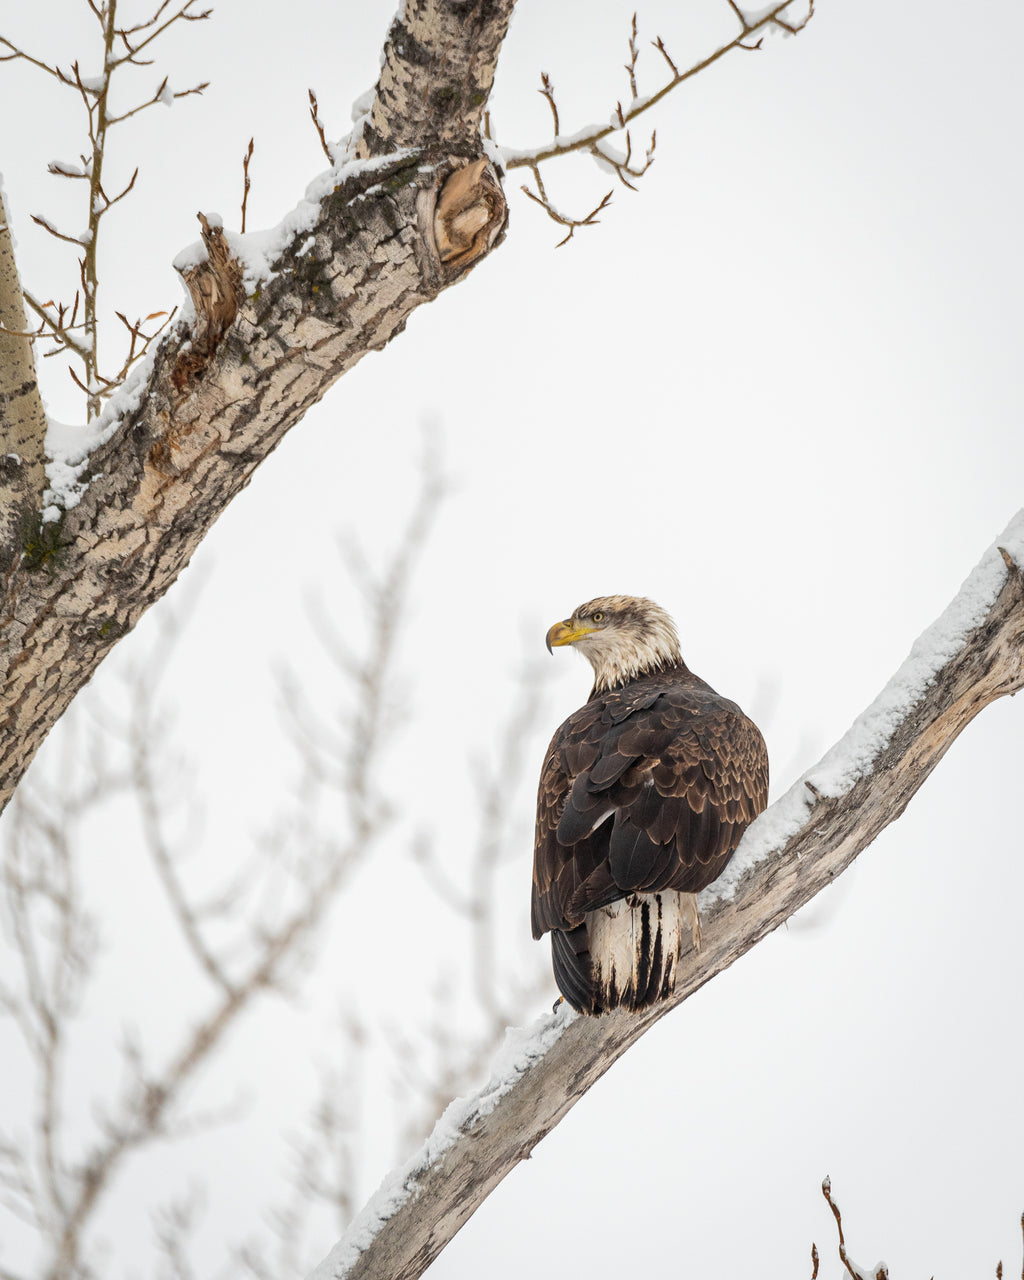 Juvenile bald eagle resting on poplar tree branch in winter